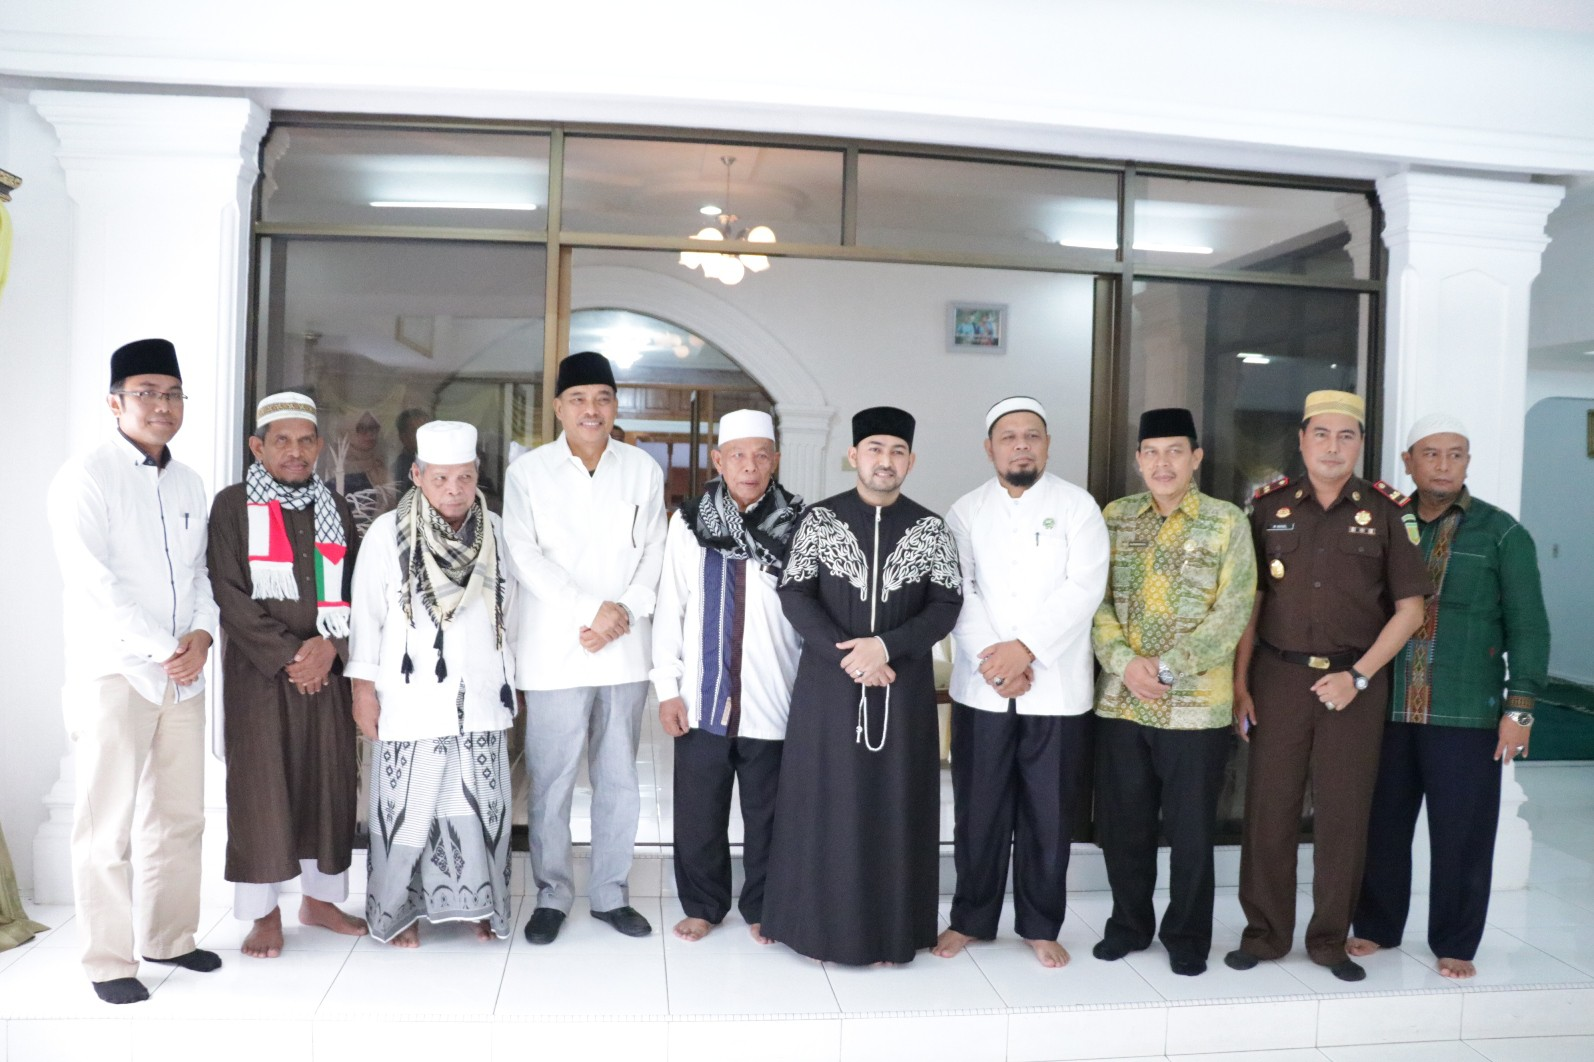 /photos/shares/berita_foto/november/MAULID NABI/IMG_5722.JPG